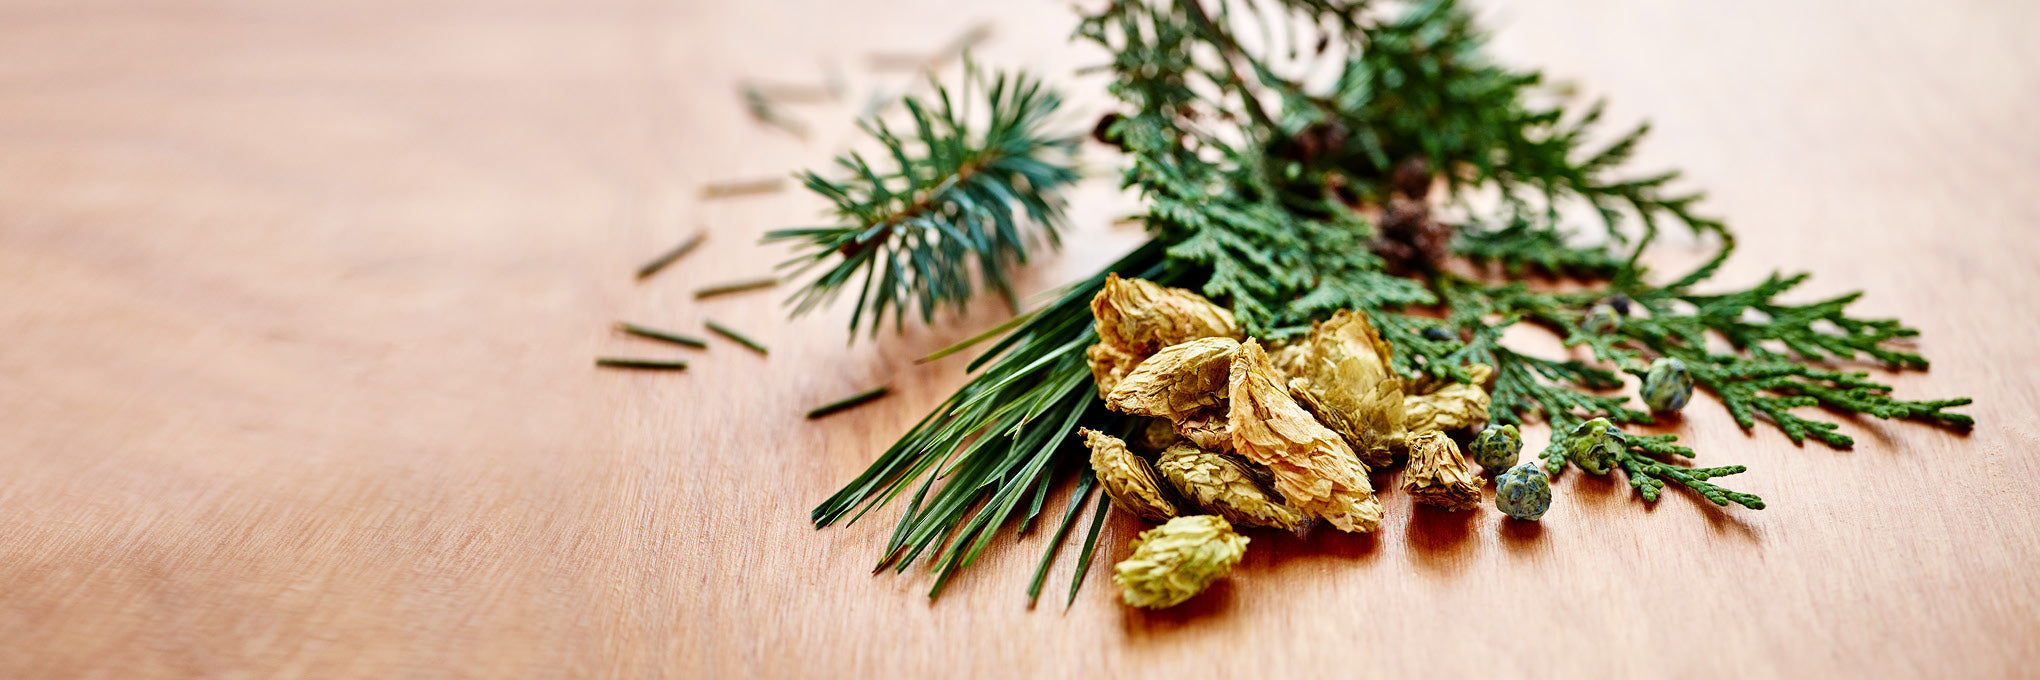 Featured terpenes: Woodsy aromas